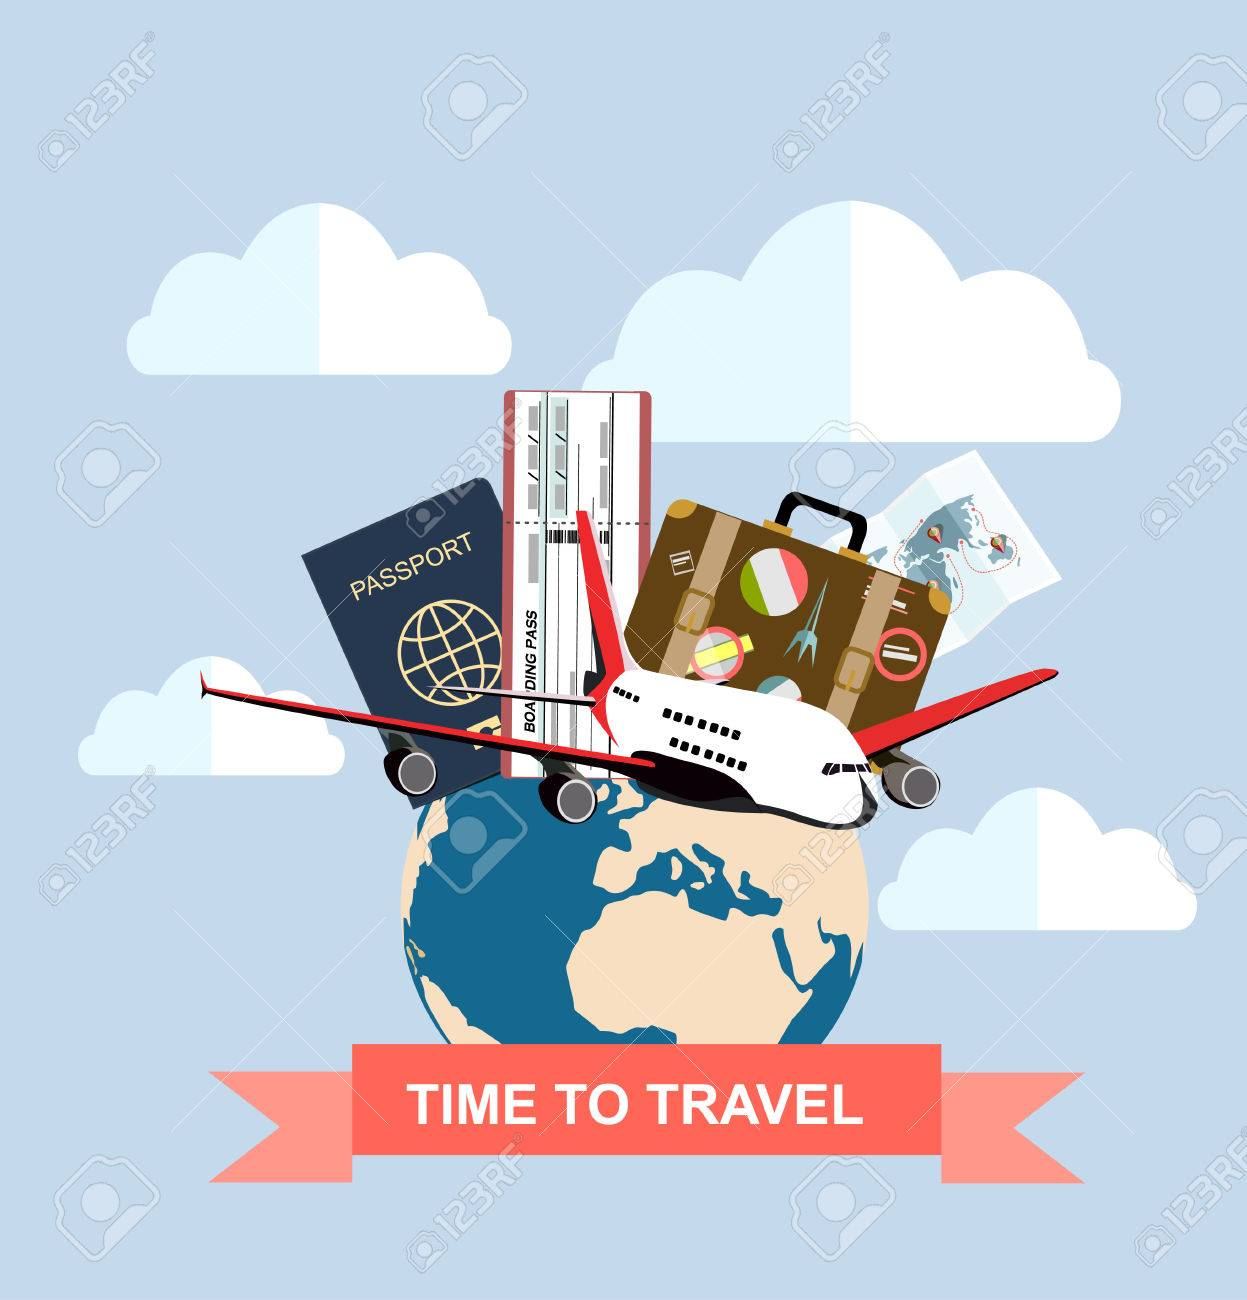 Travel and tourism concept air tickets passports and travel travel and tourism concept air tickets passports and travel suitcase with funky stickers and gumiabroncs Image collections